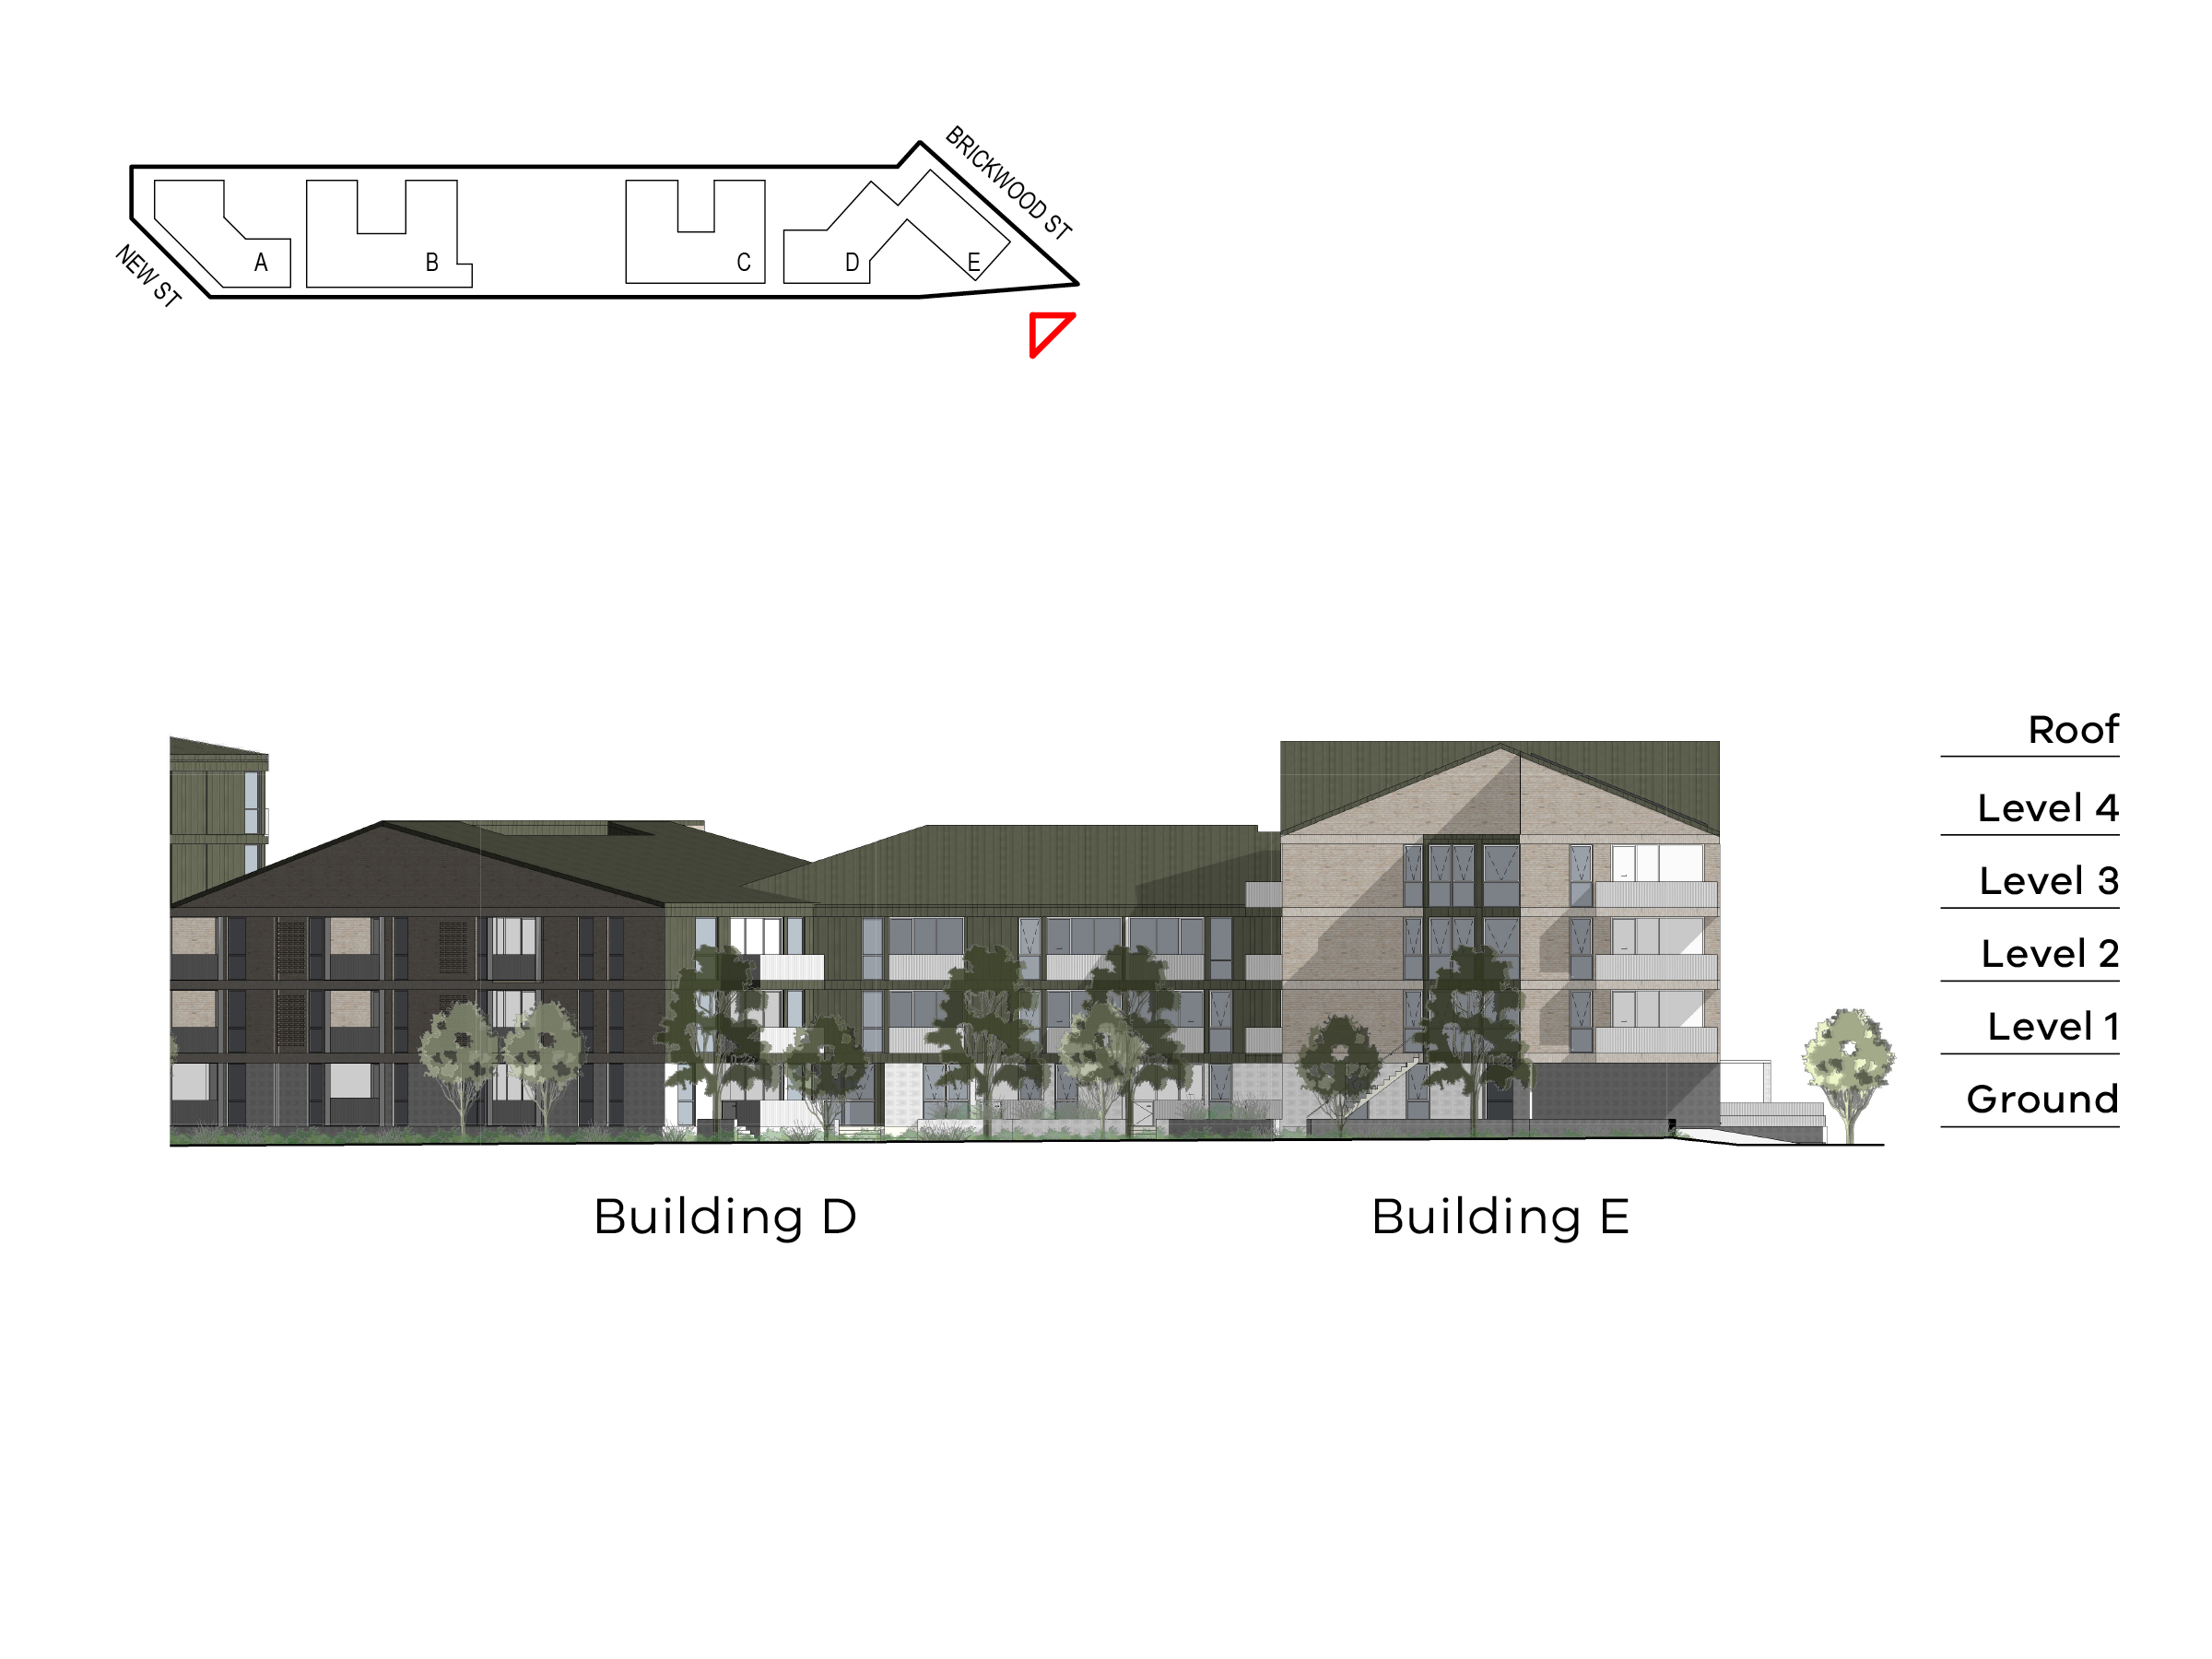 Diagram showing the heights of buildings D and E as seen from Elster Creek near the corner of Brickwood Street. Building D includes ground level, level 1-2 and a roof, building E includes ground level, level 1-3 and a roof.